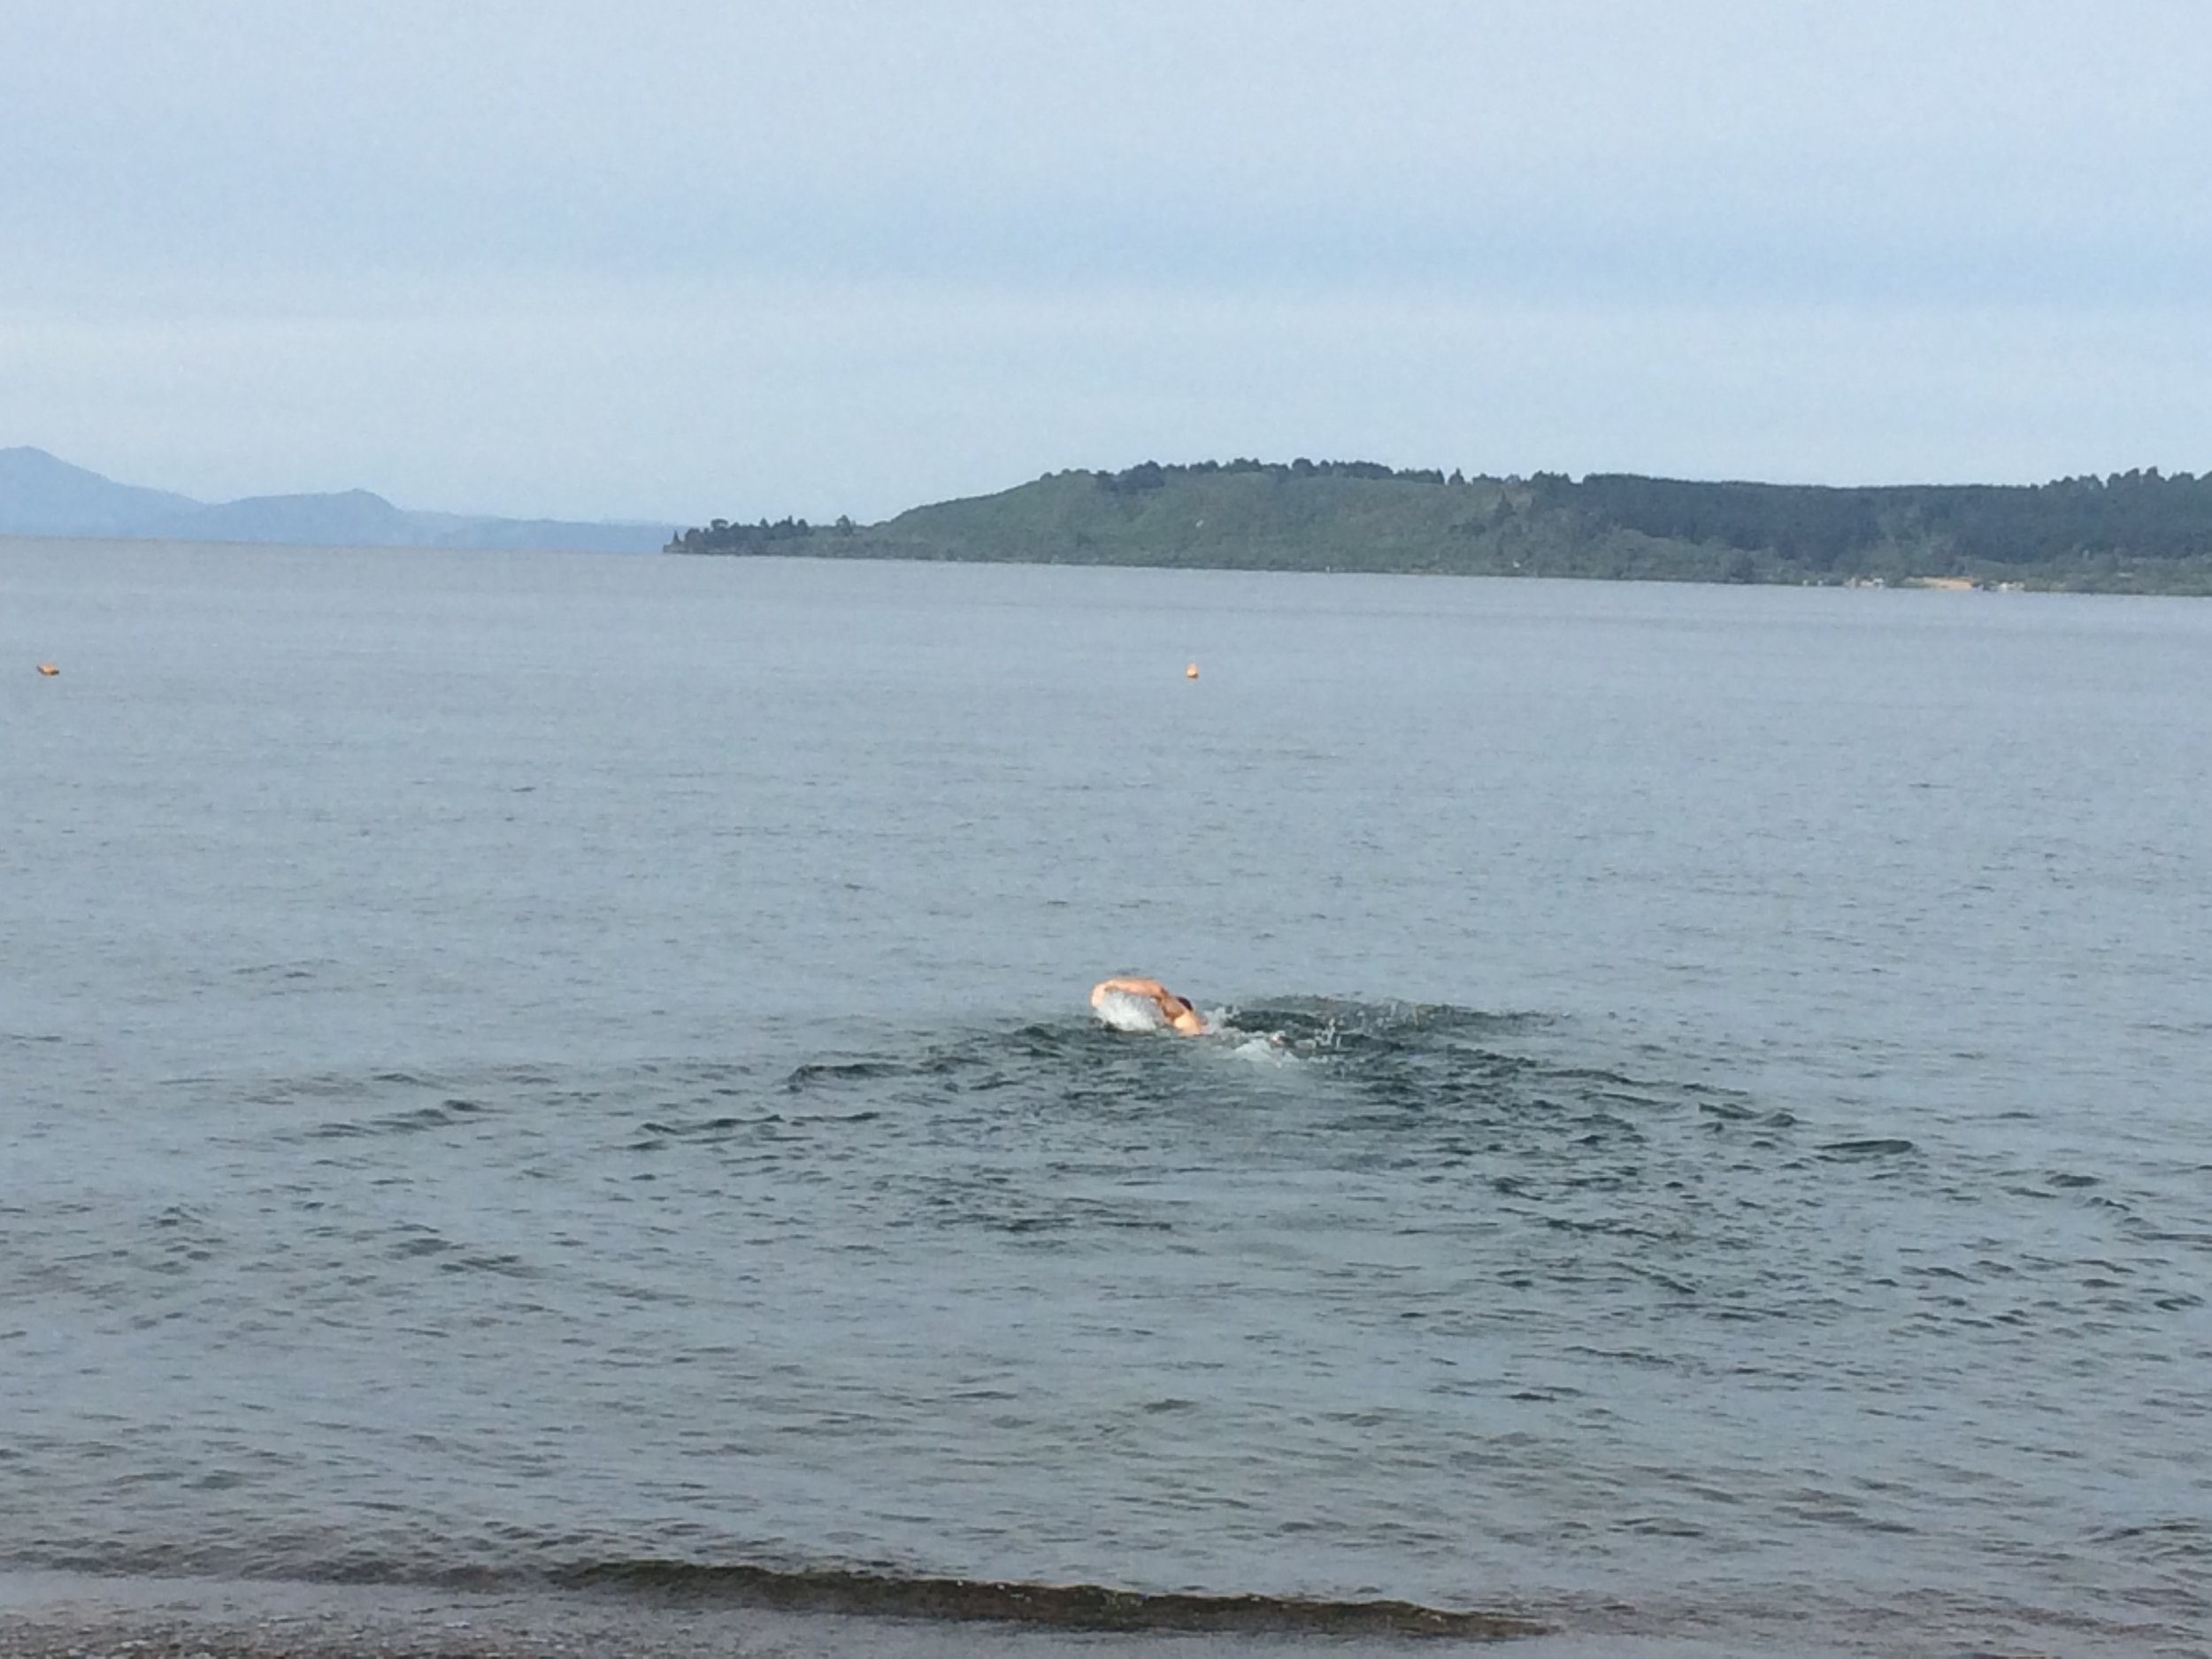 Me doing my Michael Phelps impersonation. I'm too shy to show you my Daniel Craig coming back in (no...really)